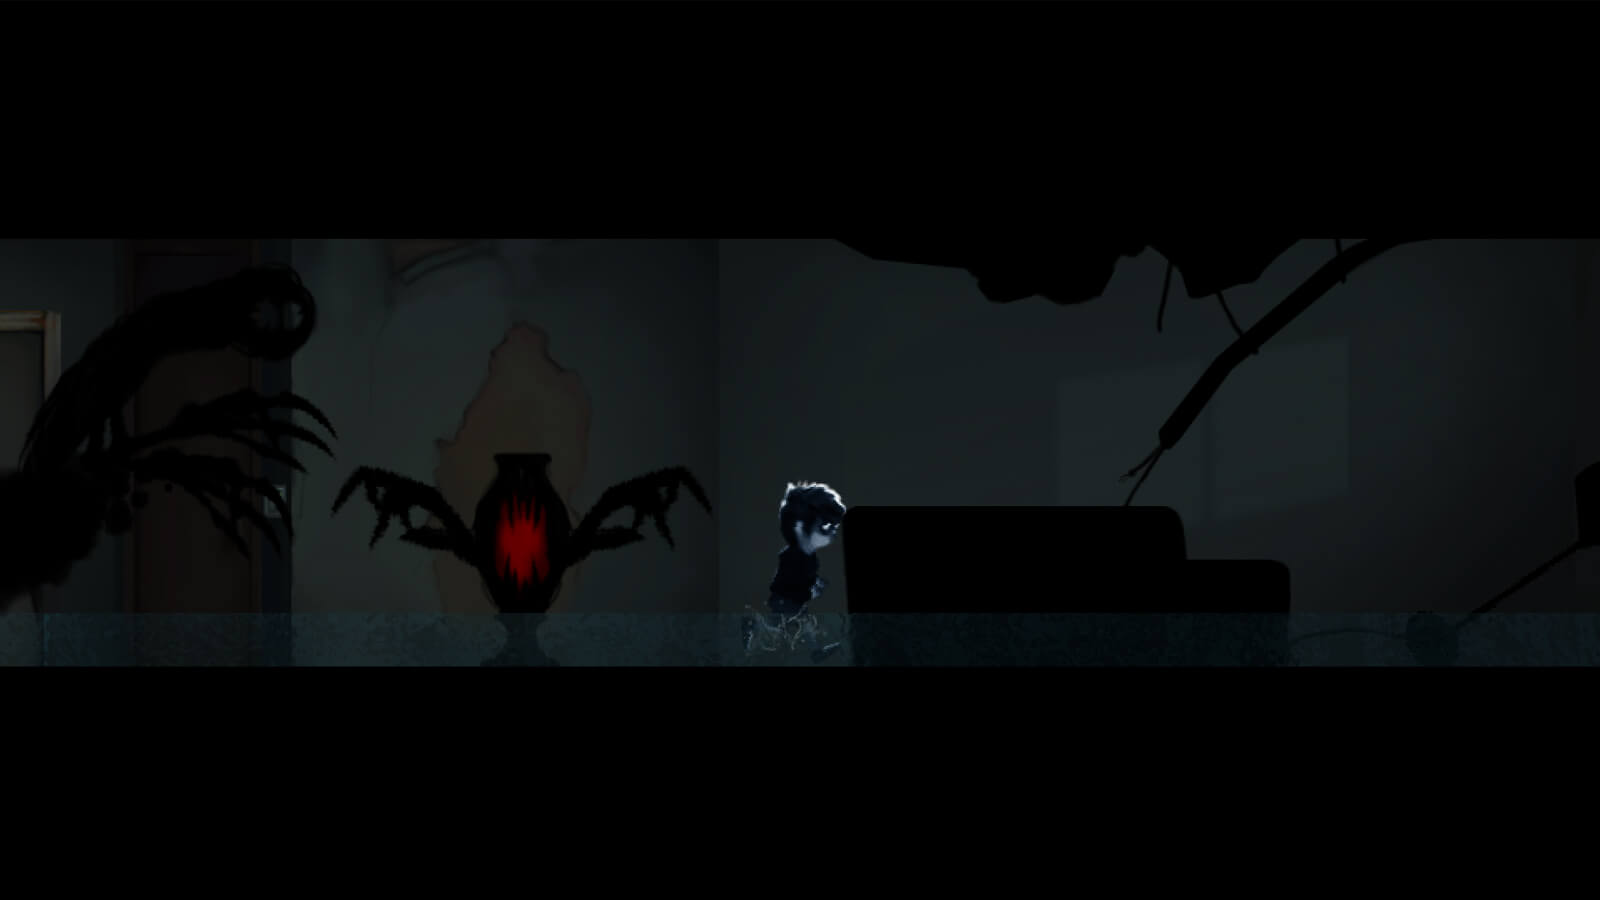 The player's character runs through a dark hallway pursued by shadowy enemies